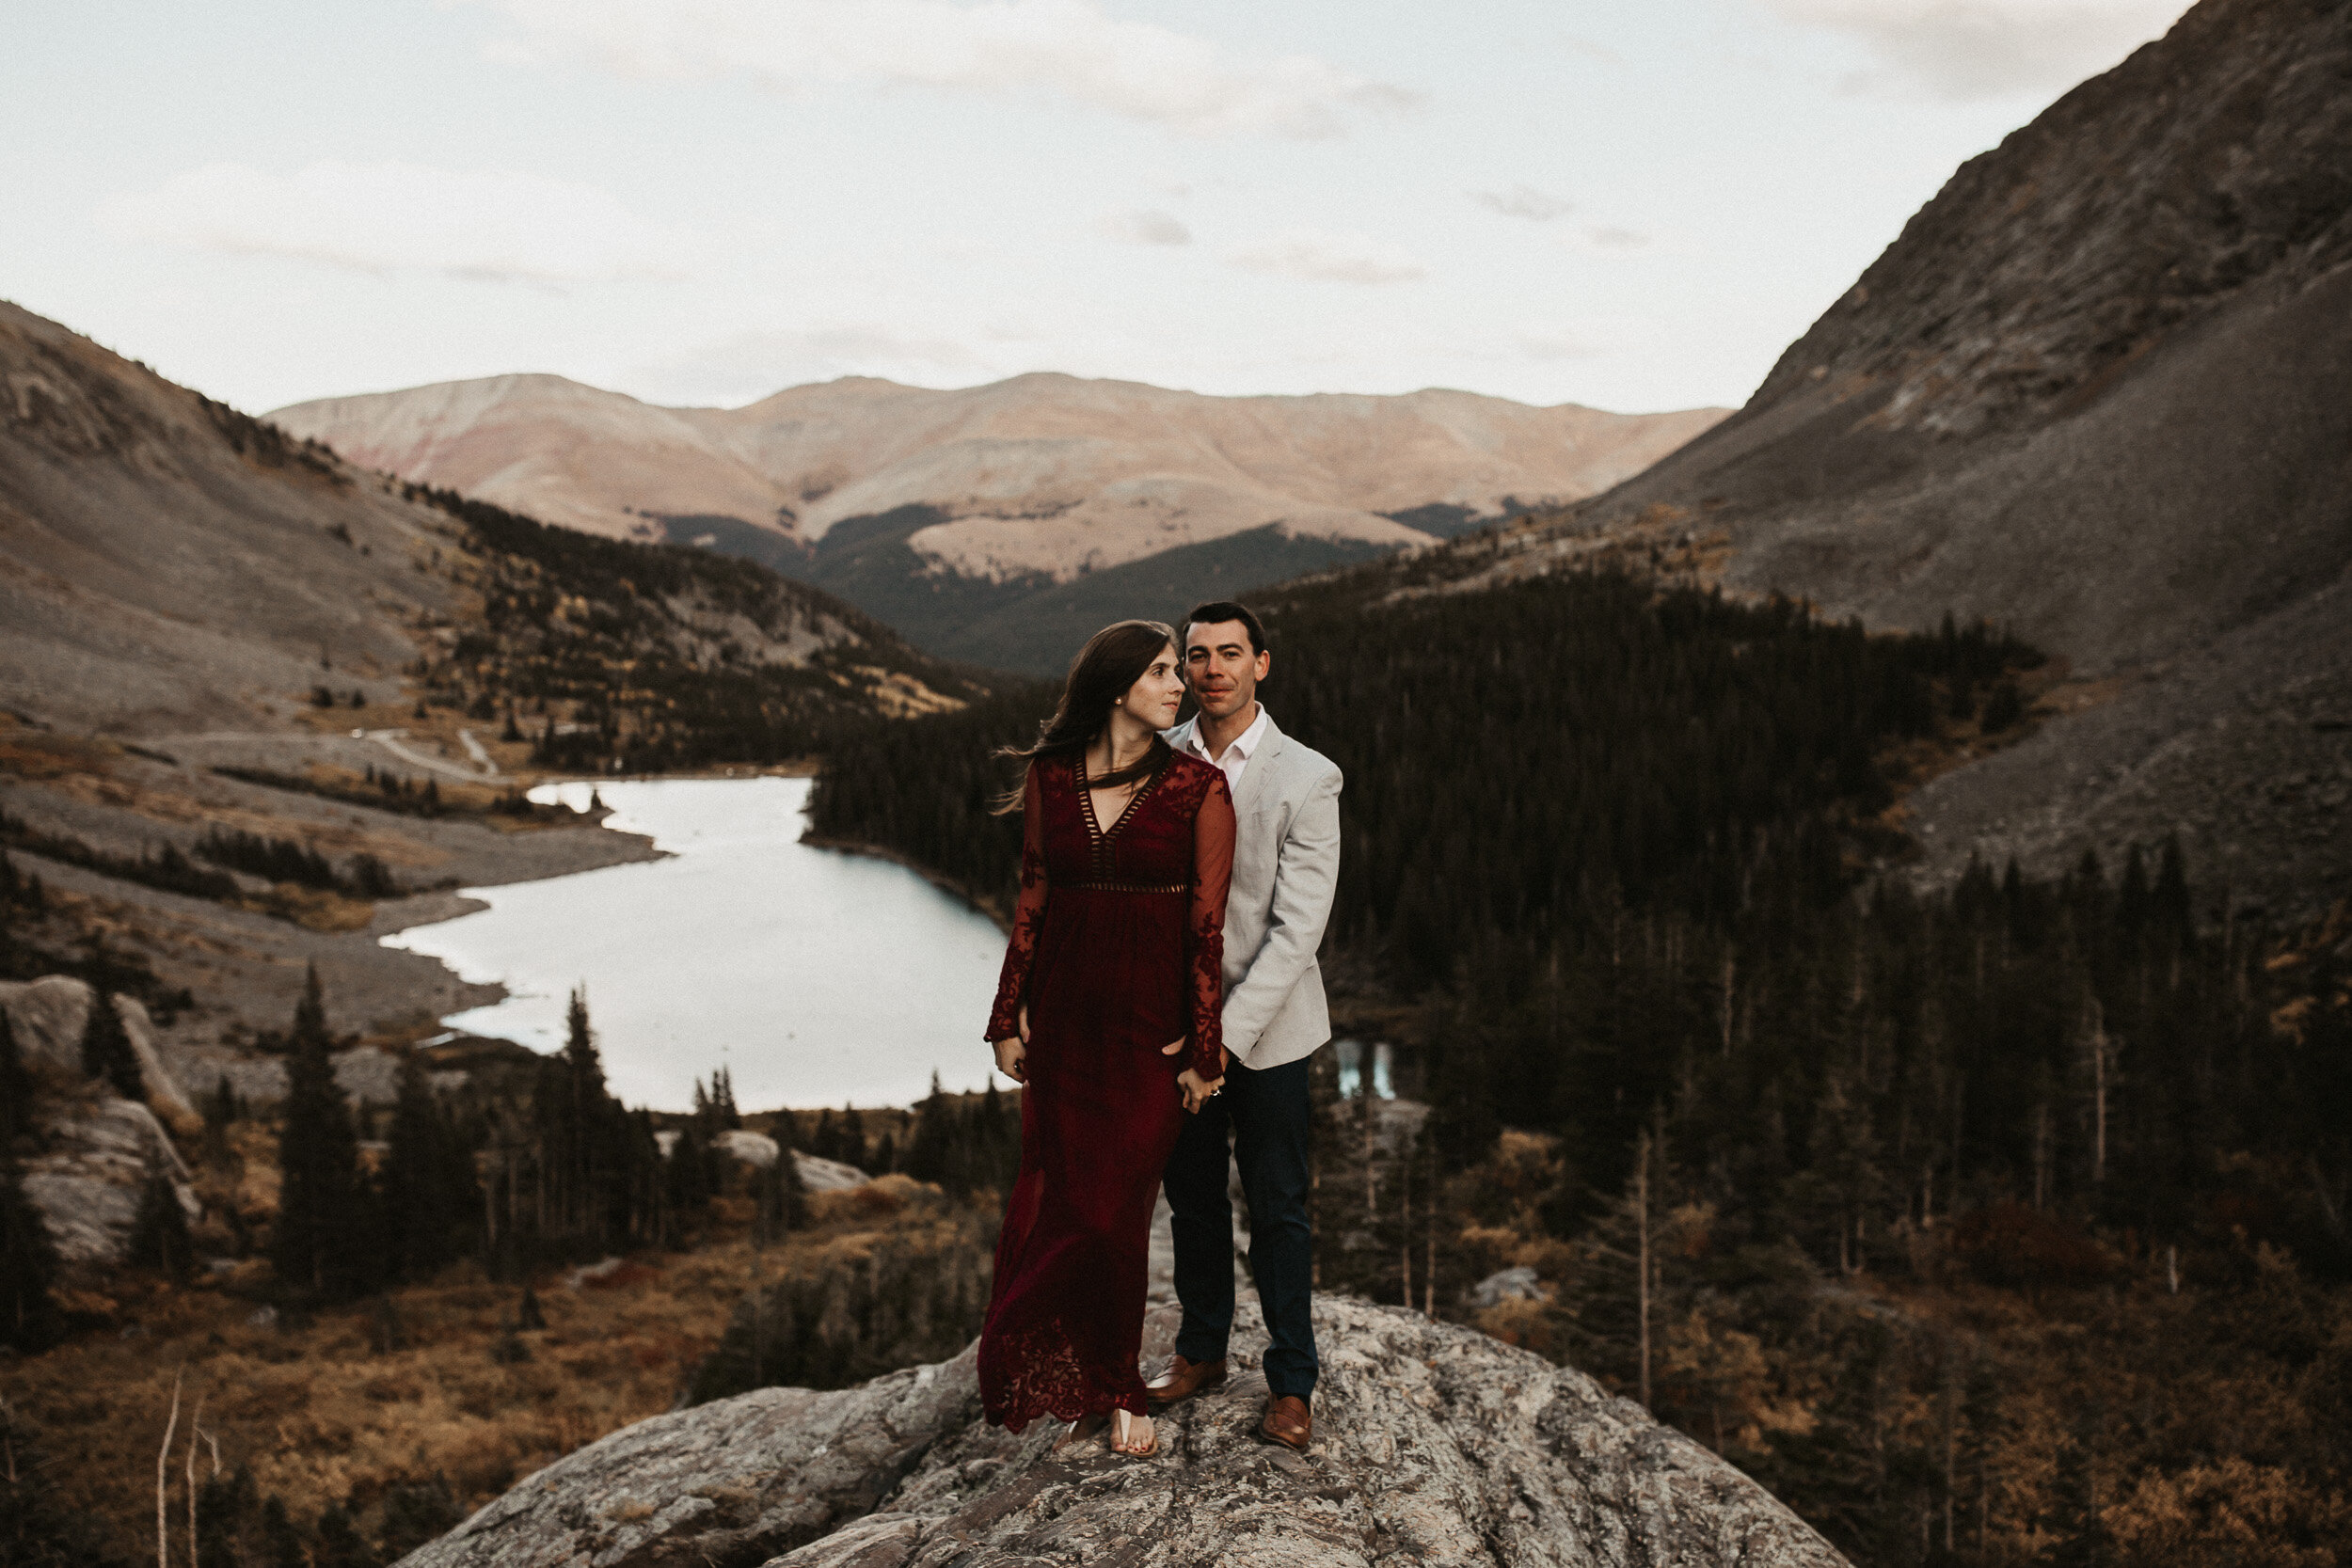 Claire_&_Matthew_Engagment_Breckenridge_Colorado_Fall_0512.jpg